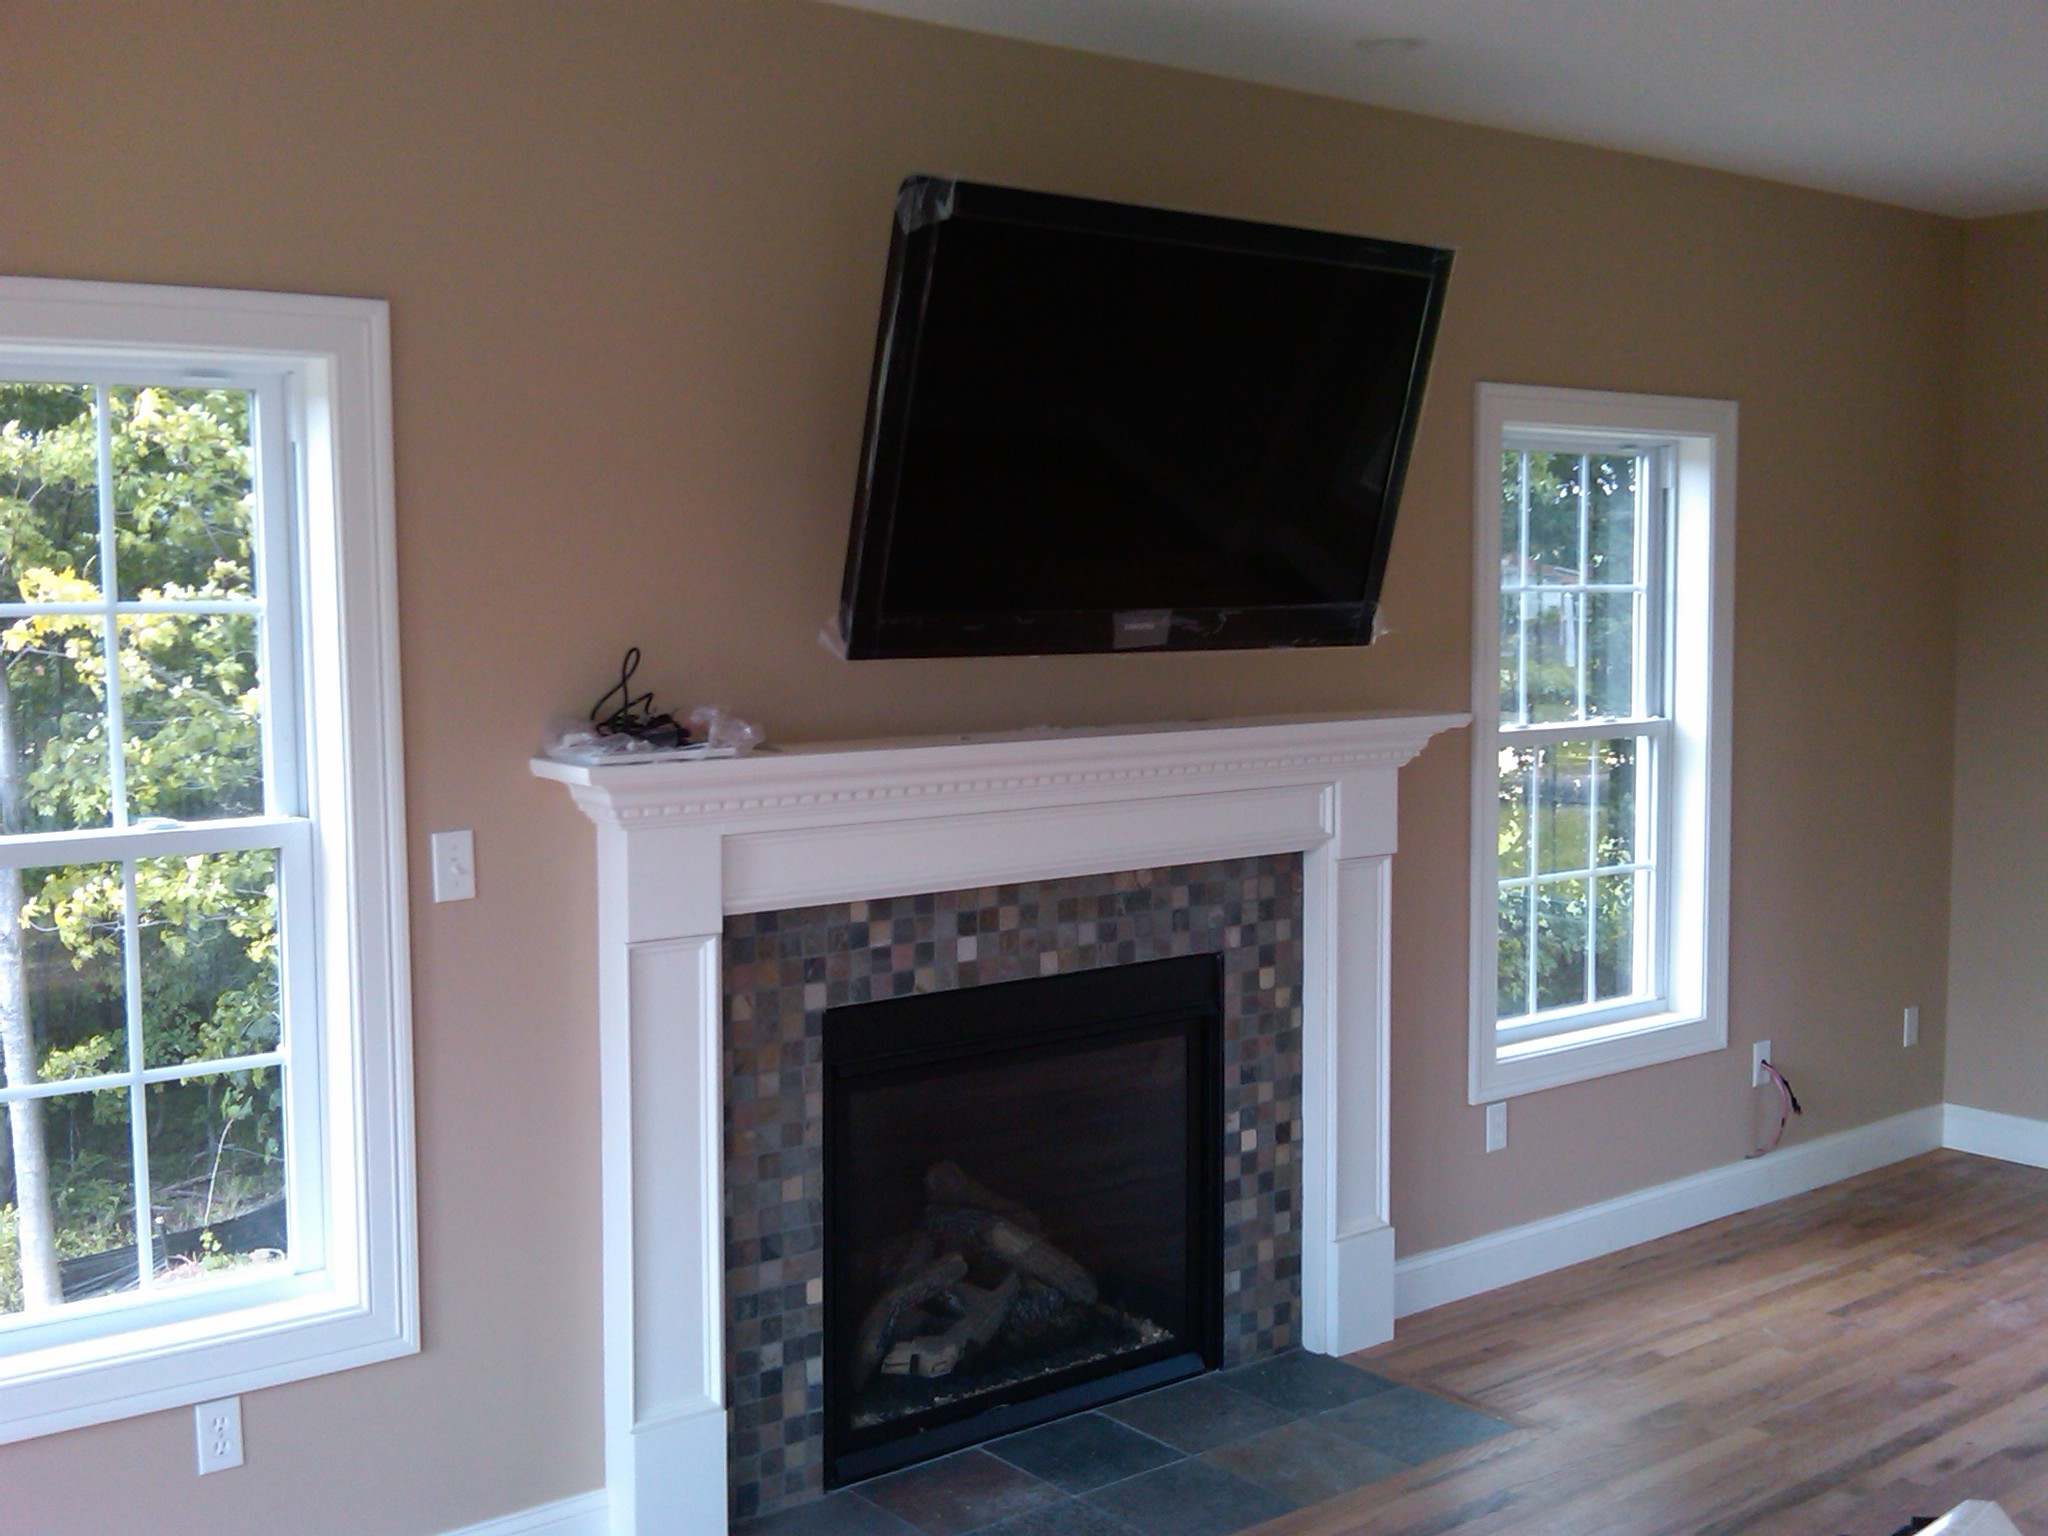 Photos Of Tv Mounted Over Fireplace Tv Over Fireplace Installation Home Theater Installation